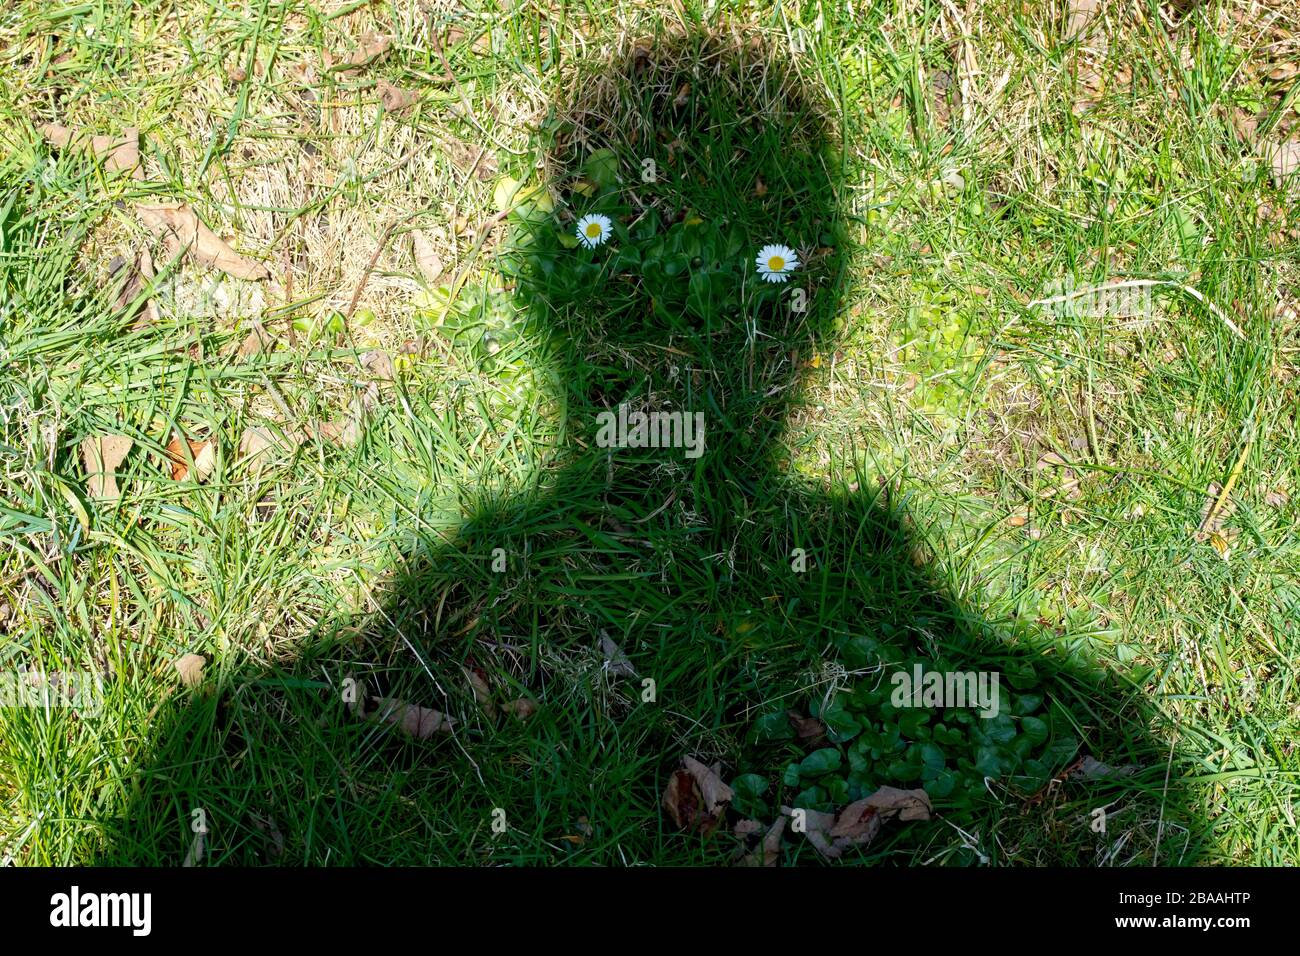 a-shadowman-the-result-of-a-weird-juxtap